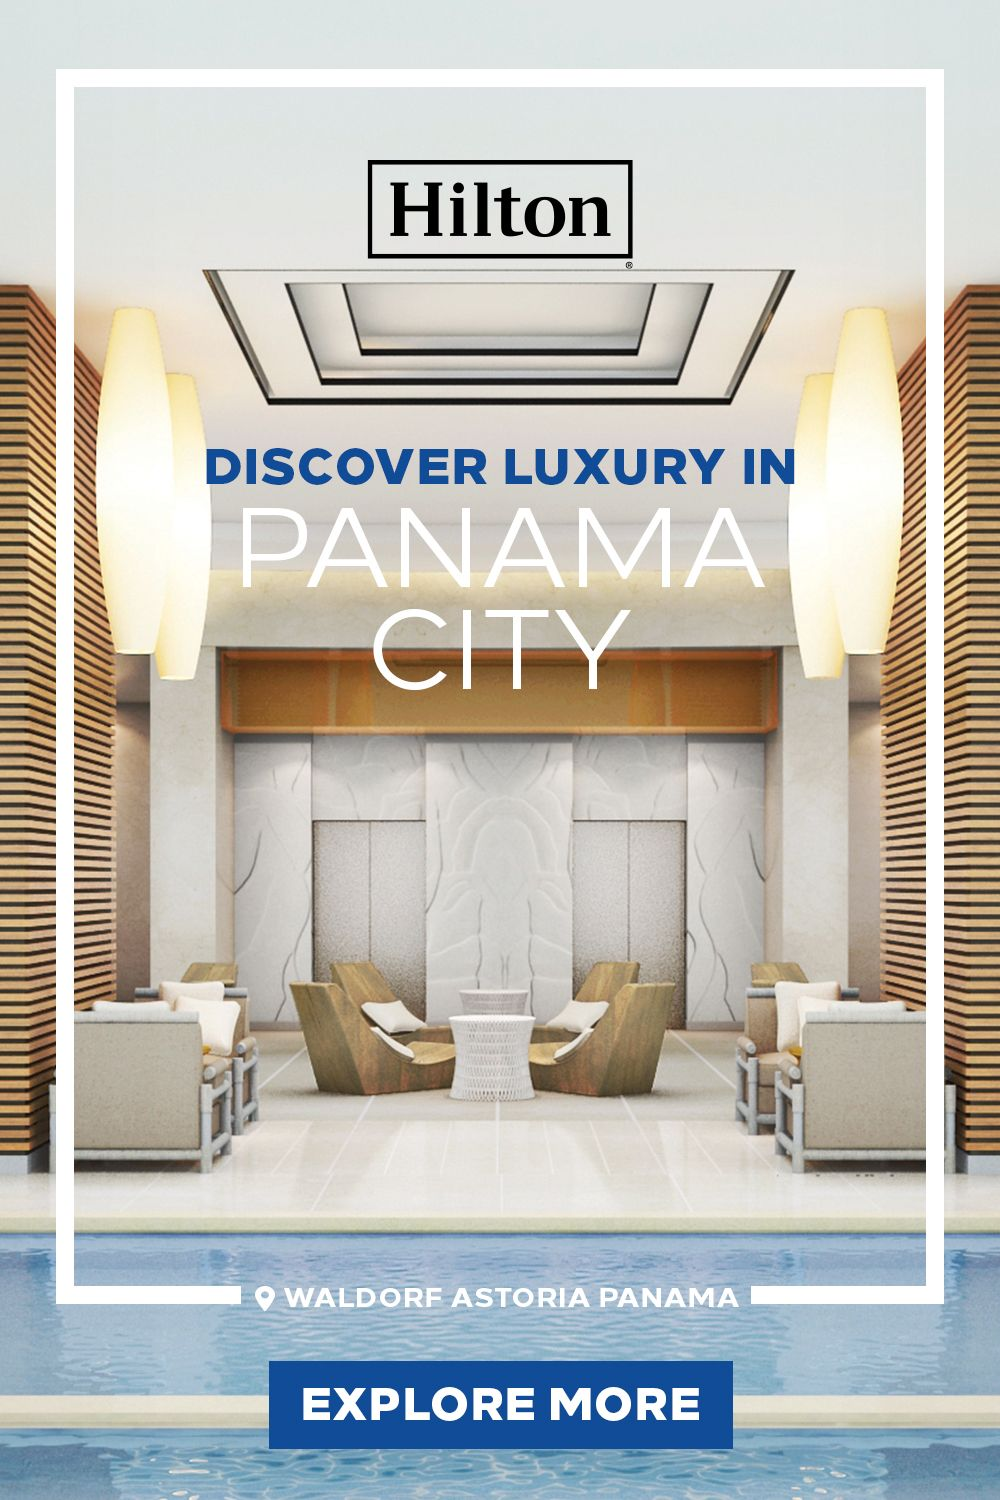 Steps from the financial and entertainment districts, Waldorf Astoria Panama is showcased amongst an unforgettable Pacific Coast Skyline, where guests enjoy elegant, precise and personalized True Waldorf Service from arrival to departure. This new hotel jewel features 248 guestrooms, suites and luxury residences as well as an array of culinary options to serve the most exquisite palates.  #panamacity #panama #hotel #travel